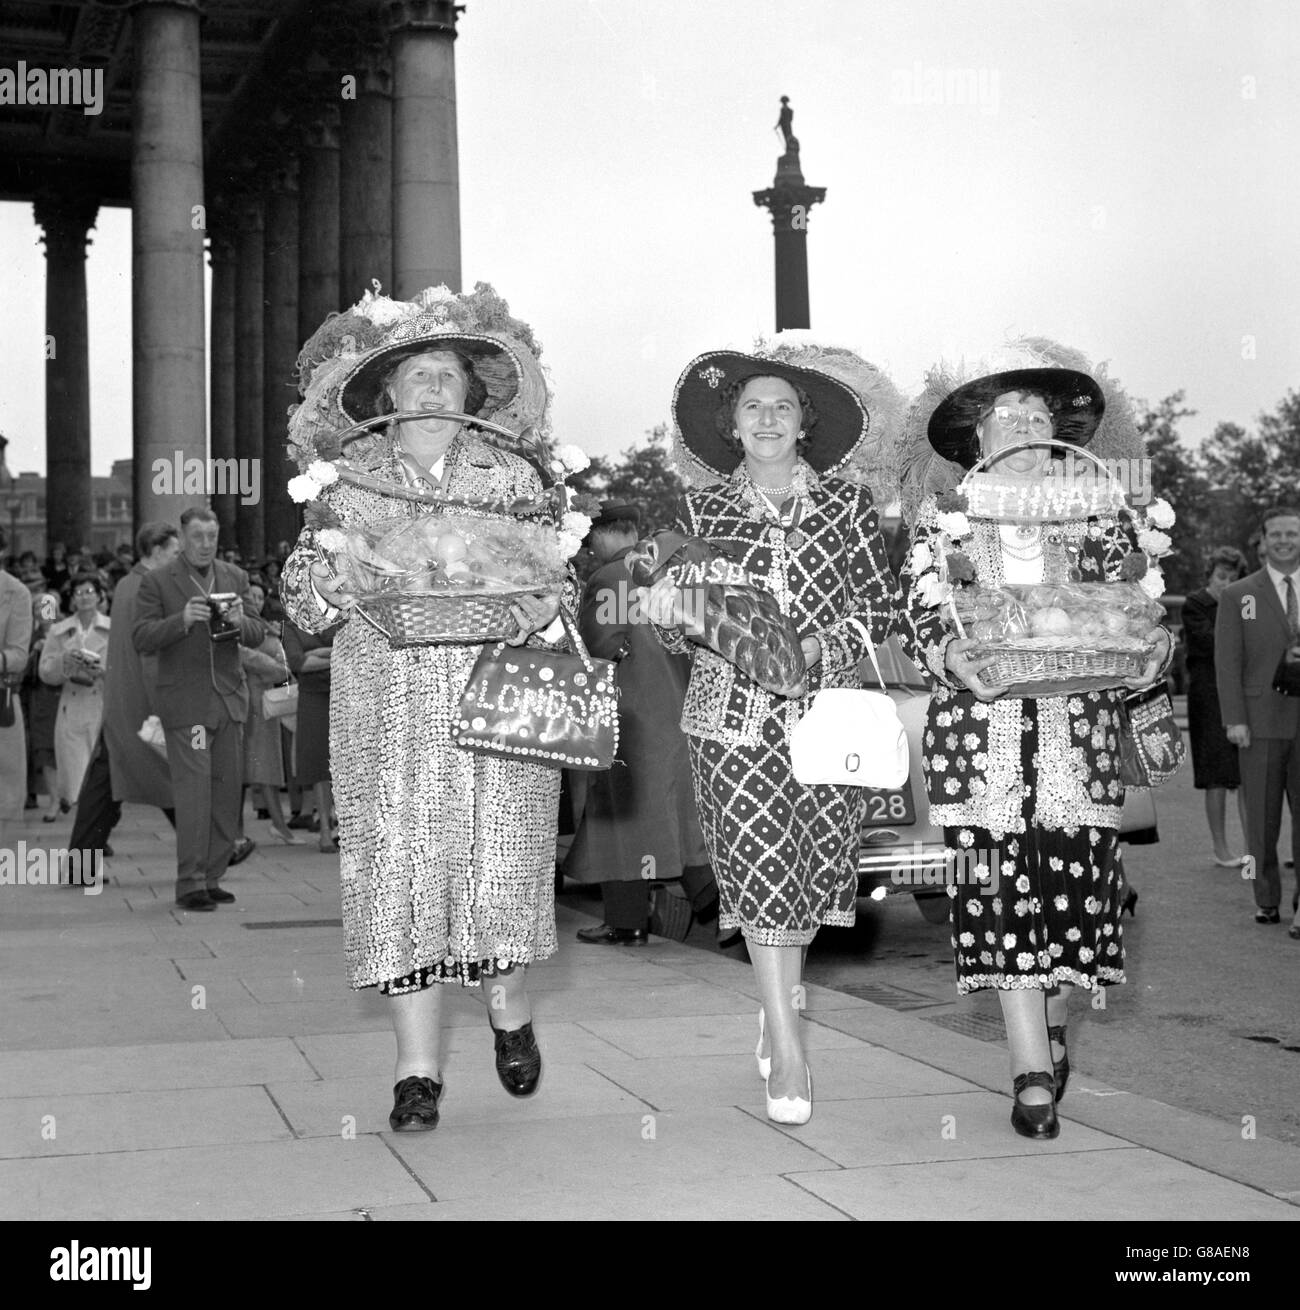 Customs and Traditions - Pearly Queens - London - Stock Image